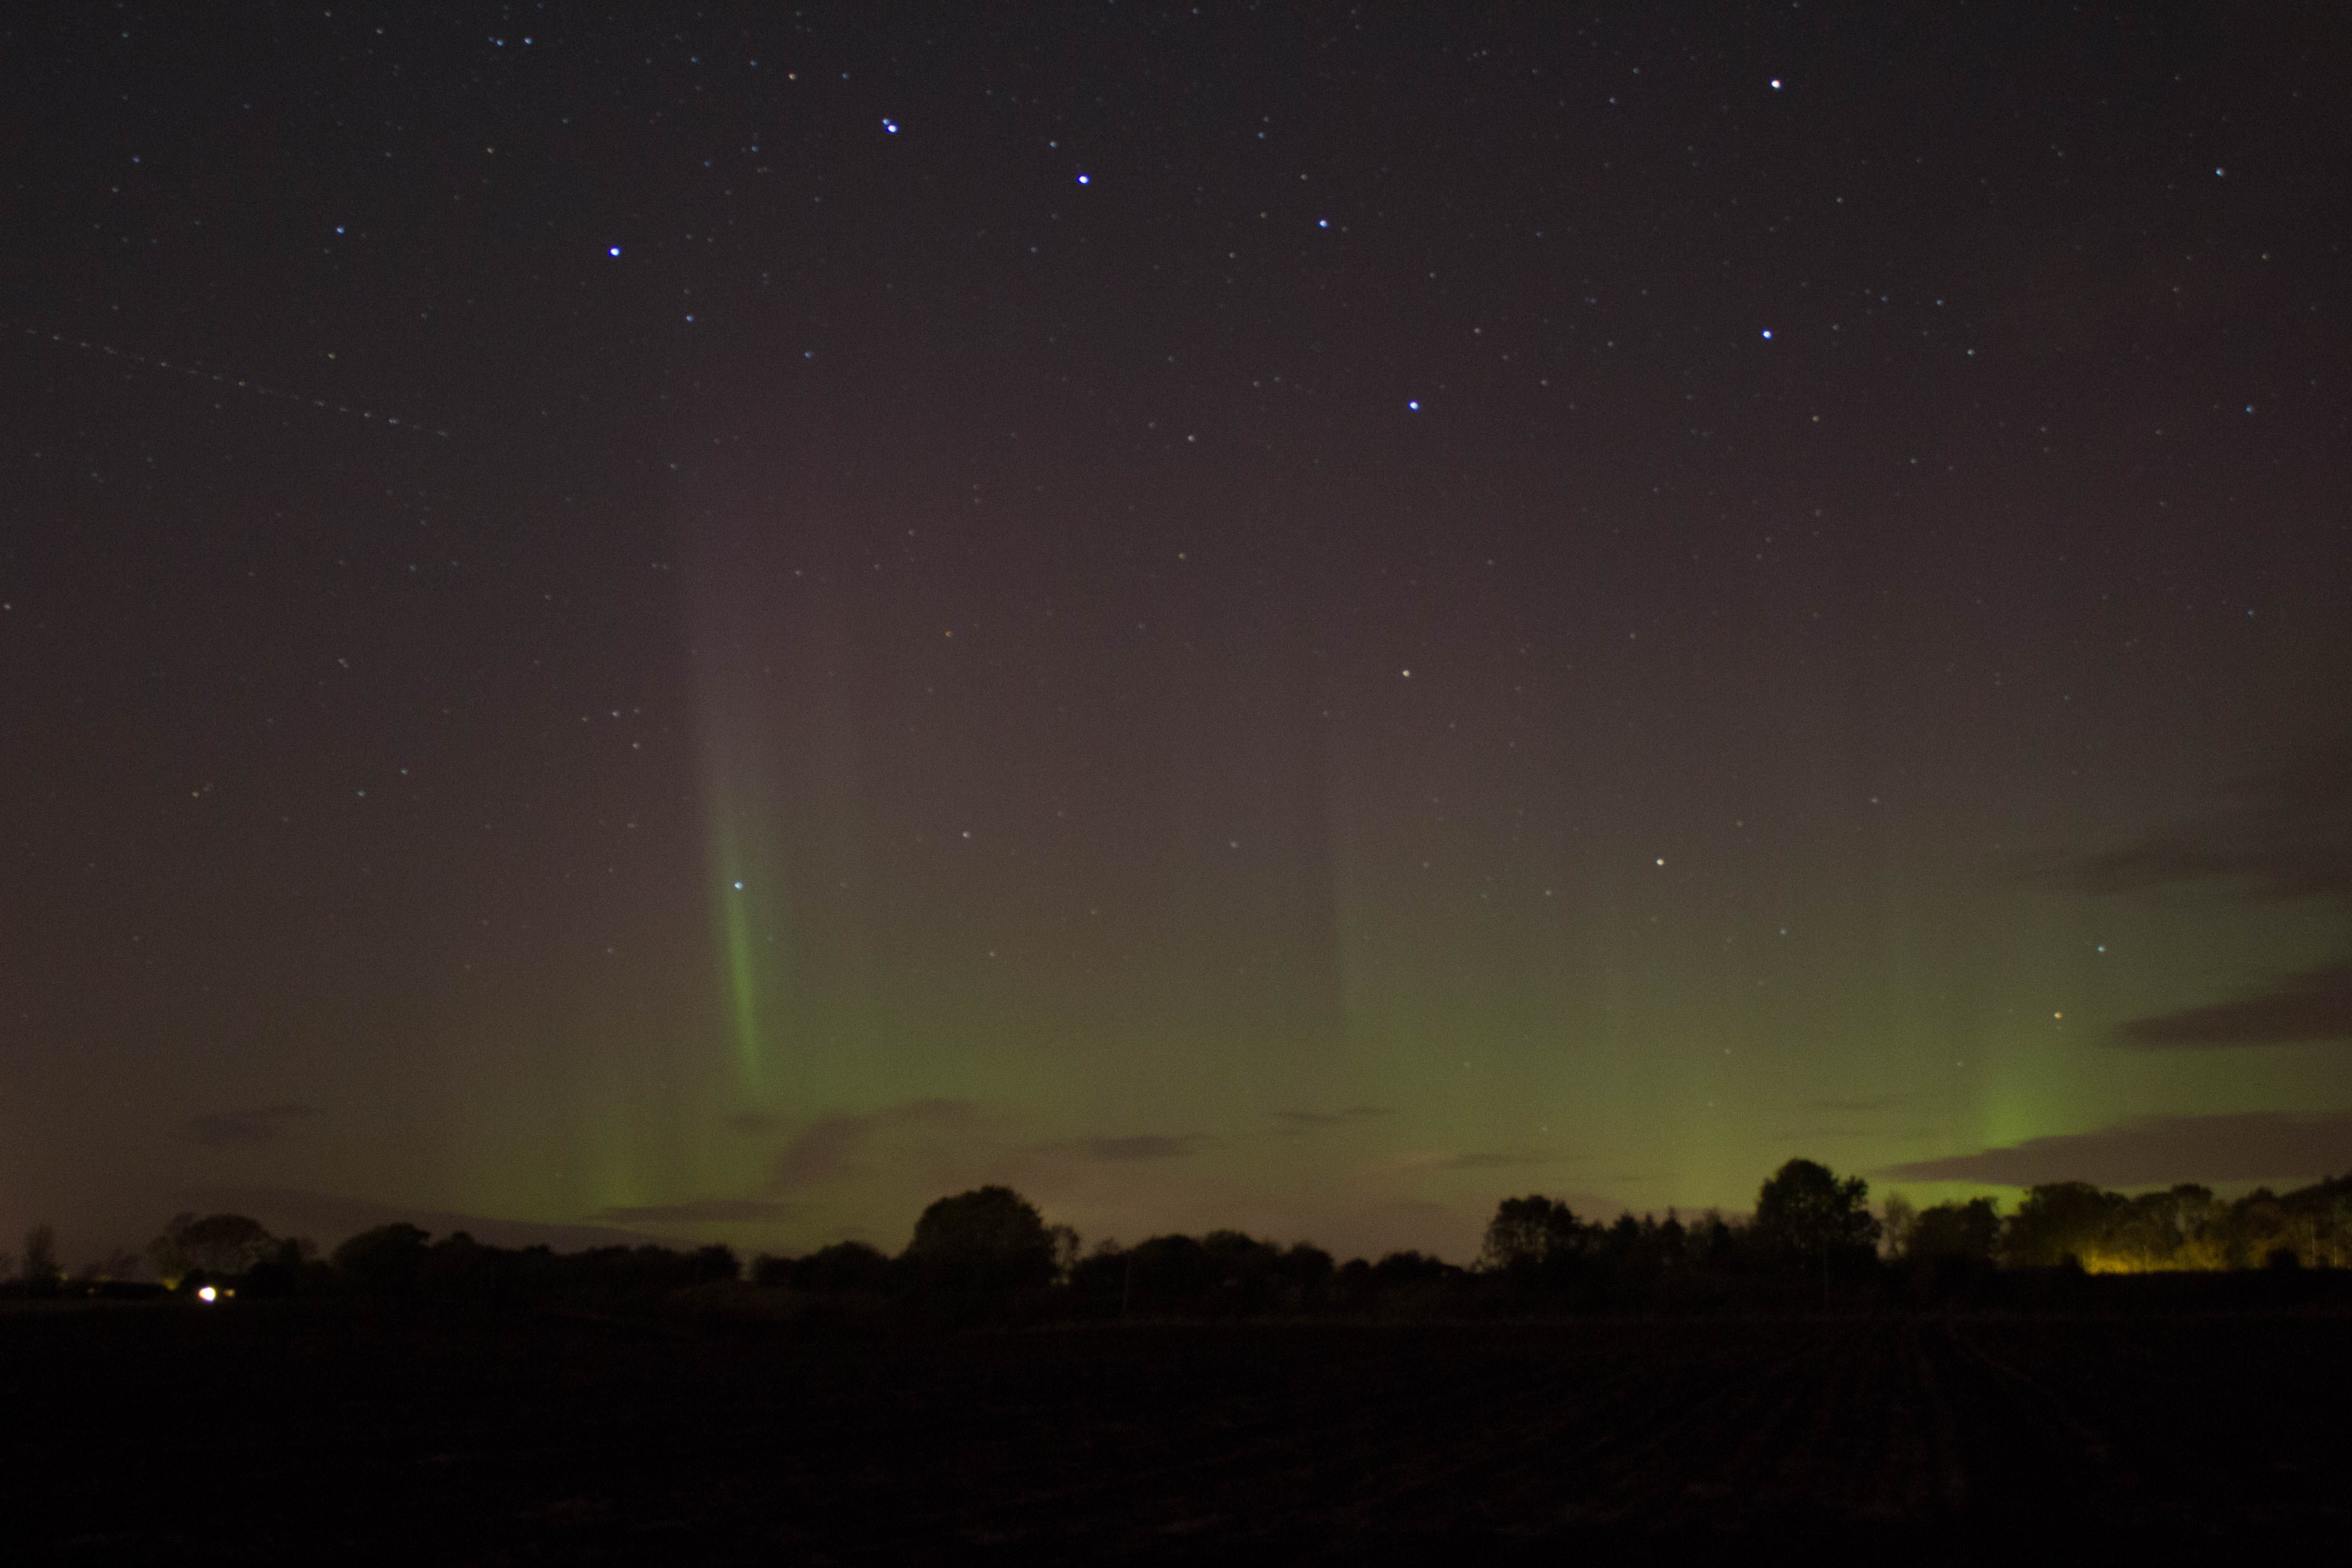 Aurora By Andy Heenan 26.10.16 20.09 Aurora By Andy Heenan.  Camera Canon EOS 600D. f/4  20seconds ISO-1600. The only aurora submitted this year (so far when published)